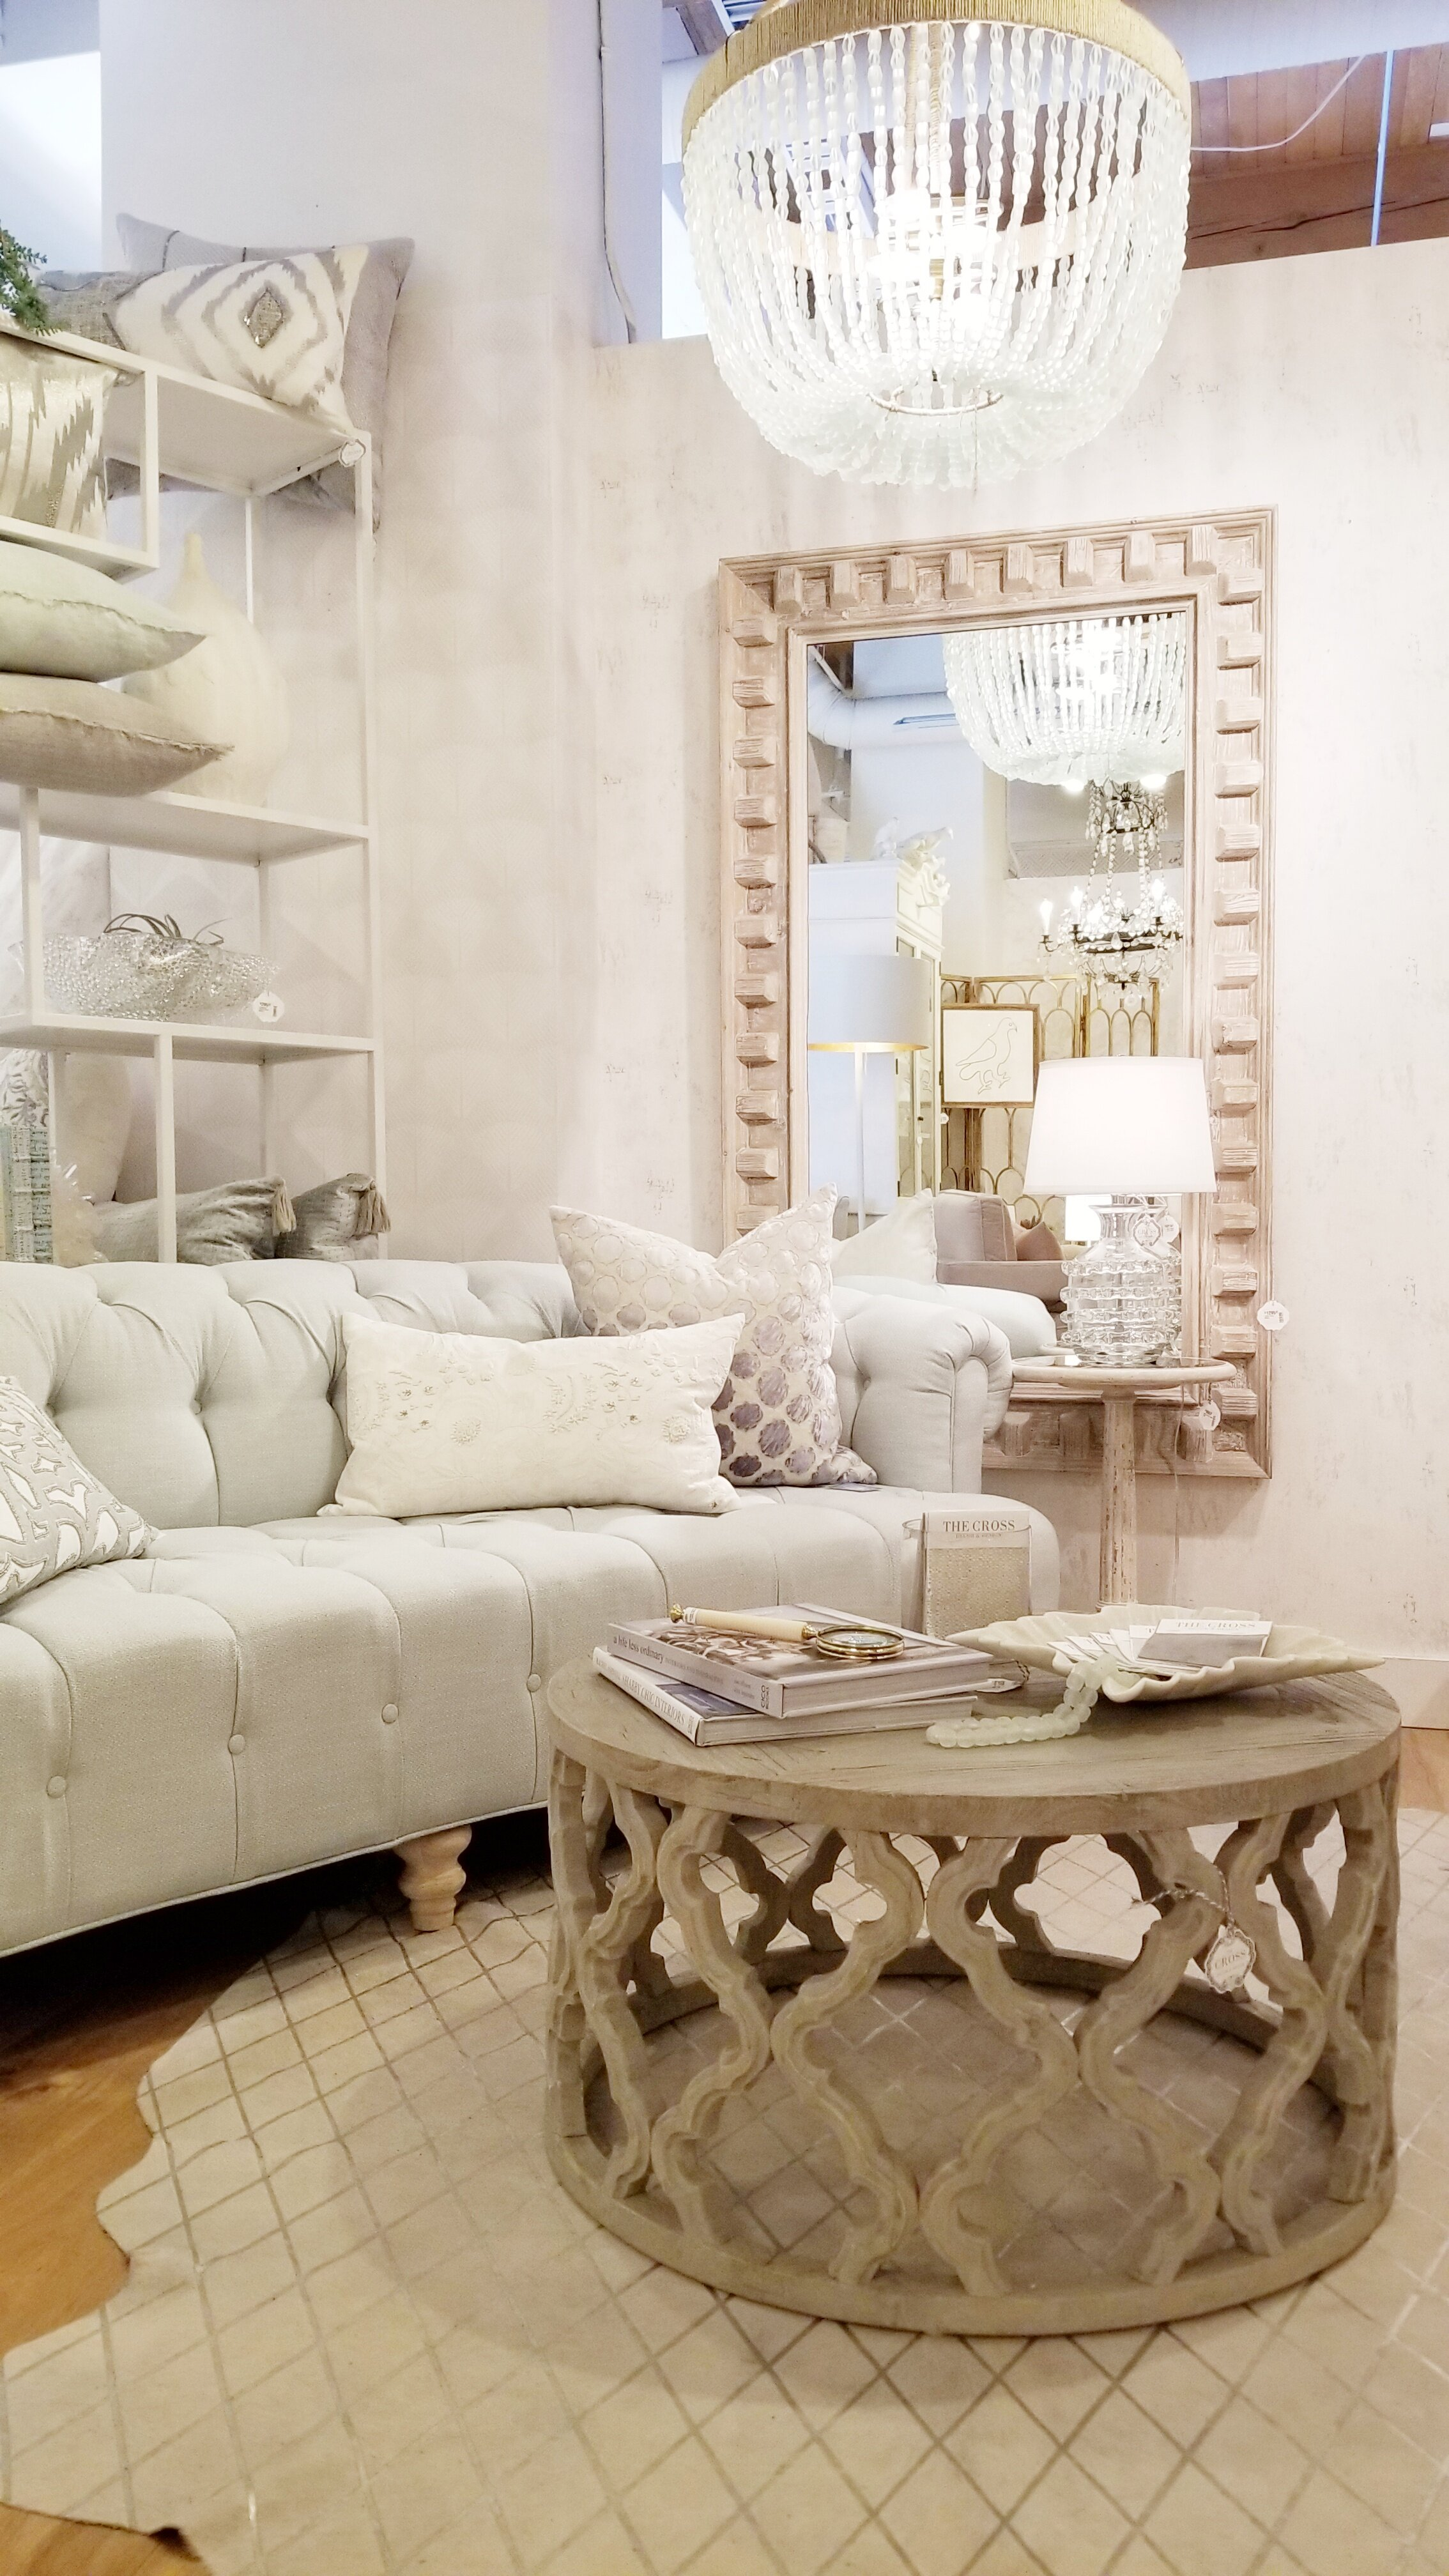 interior-designs-by-adrienne-cranbrook-bc-button-tufted-sofa-mirror-with-wood-frame-beaded-chandelier-the-cross-decor-&-design